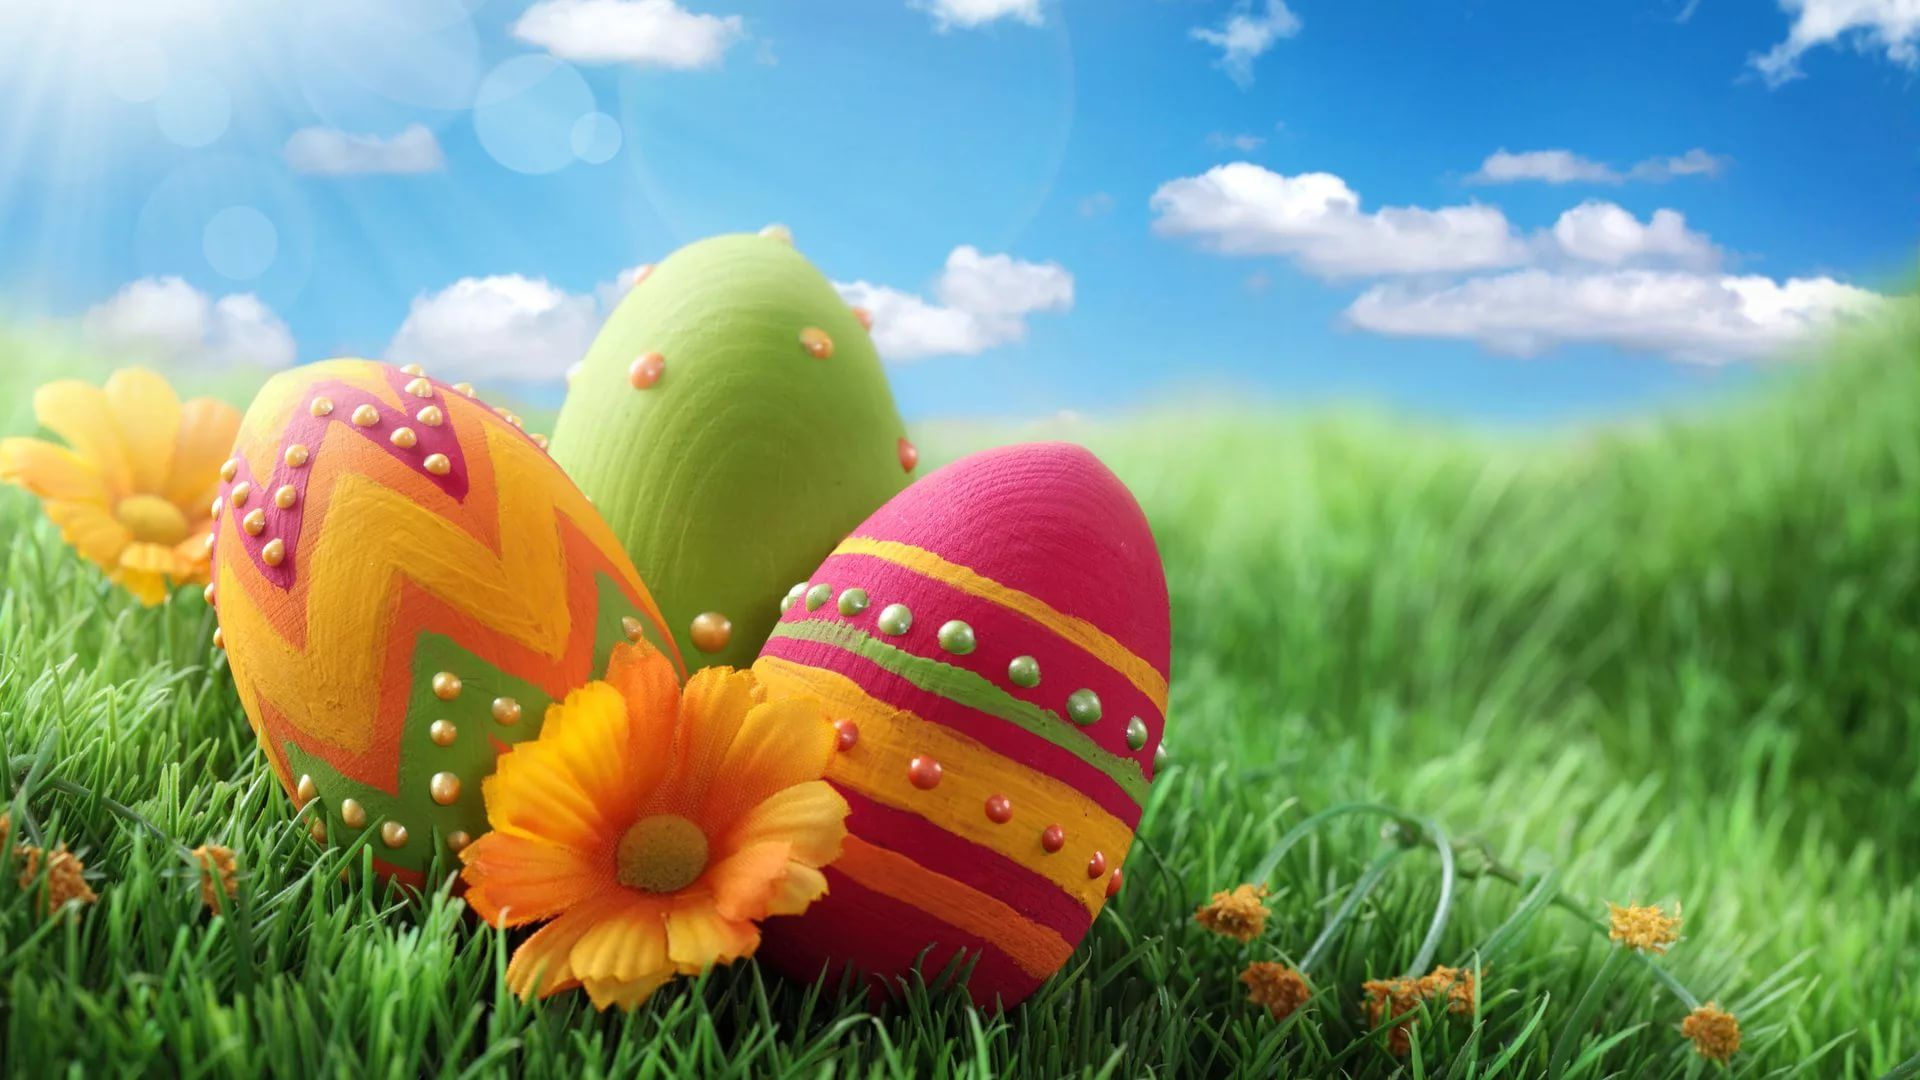 Happy Easter wallpaper photo